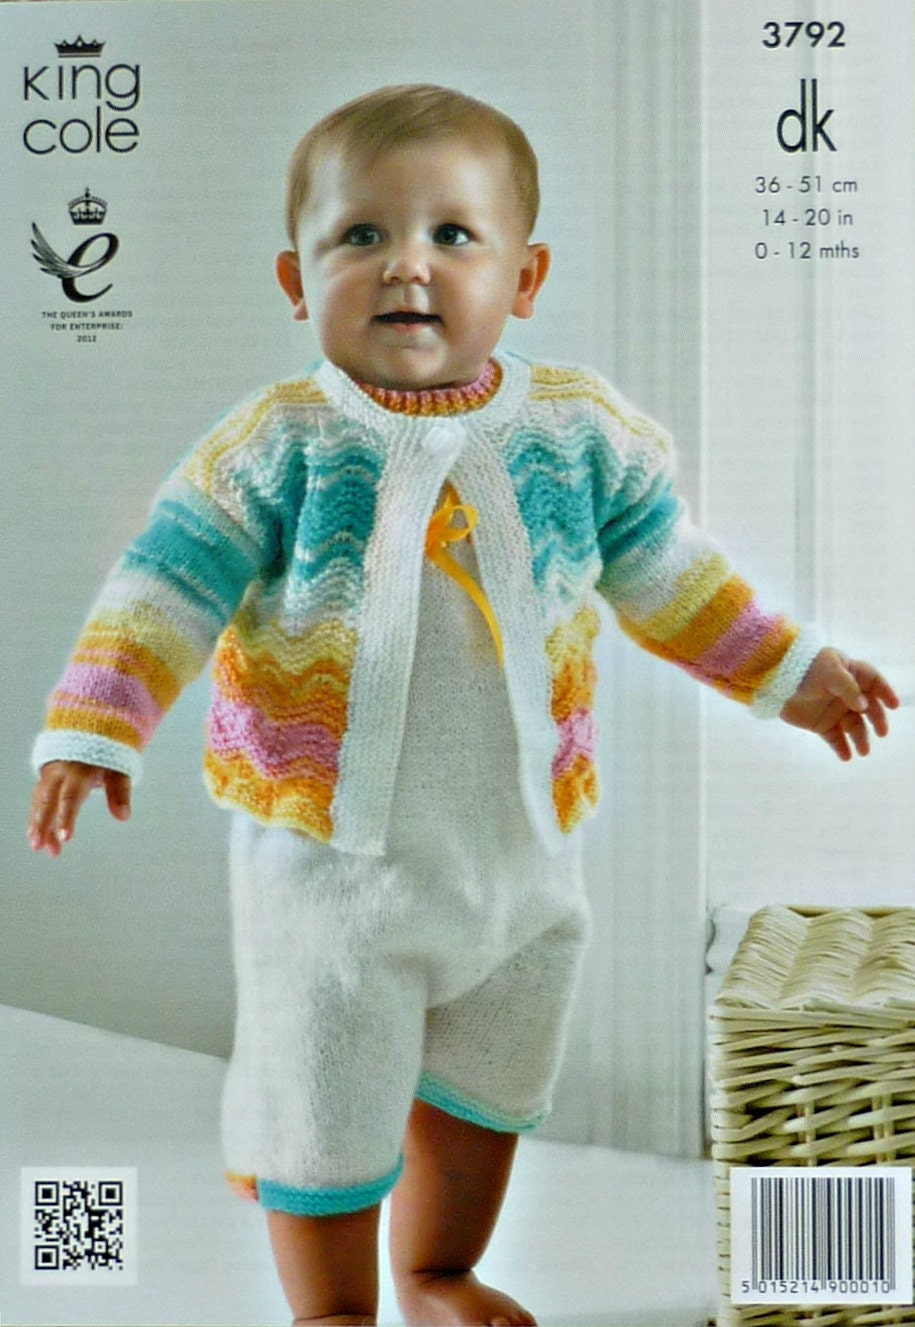 All In One Cardigan Knitting Pattern : Baby Knitting Pattern K3792 Babies All In One Romper Suit & Long Sleeve W...